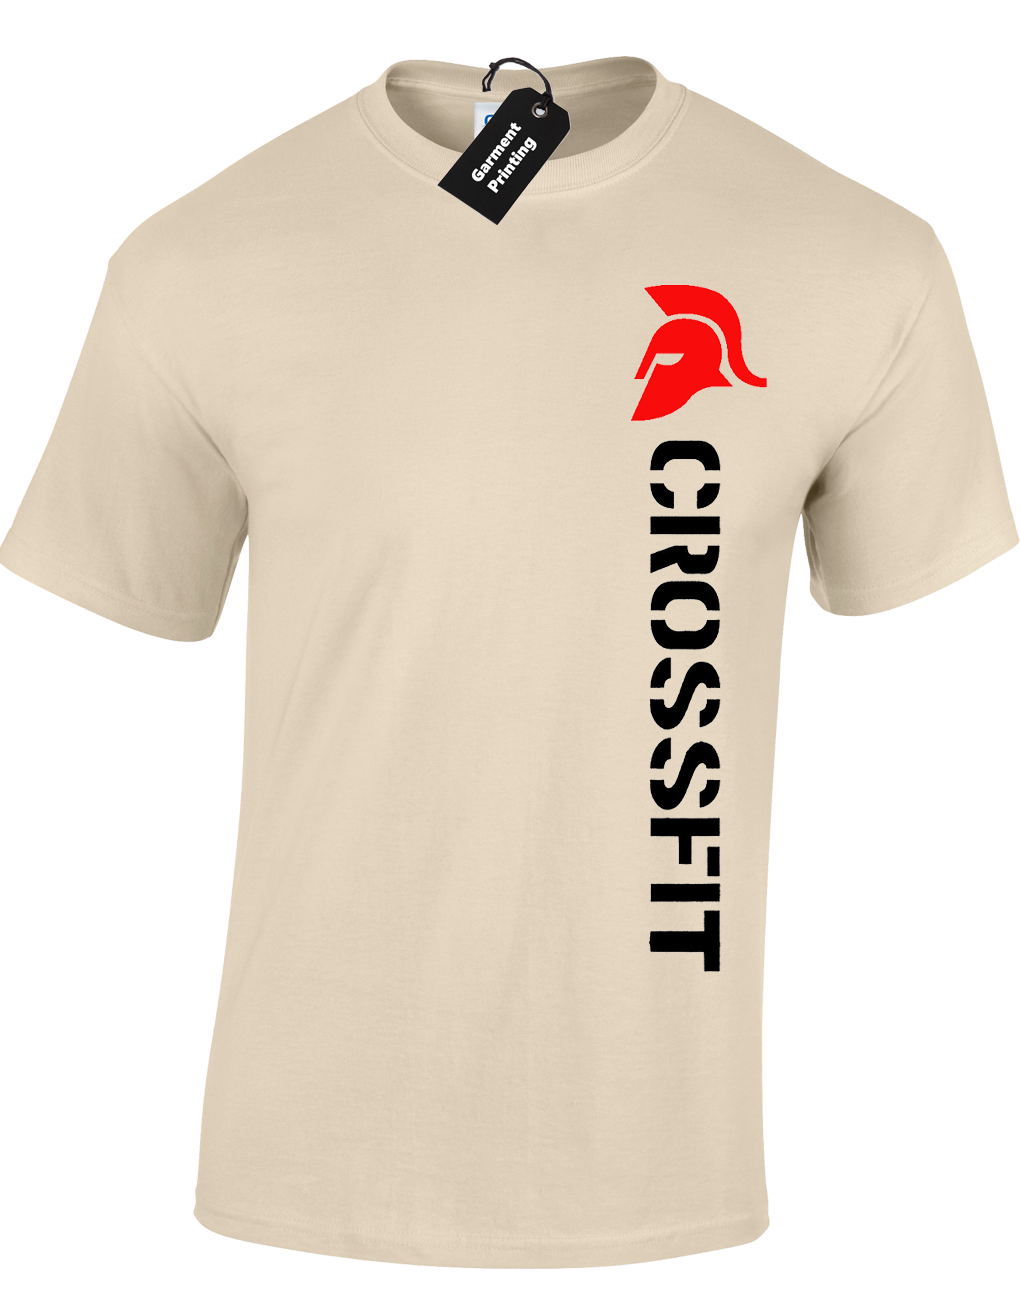 5b8463f9c Crossfit Spartan Mens T-Shirt Training Top For Gym Weights Running Fitness  9 9 of 12 ...